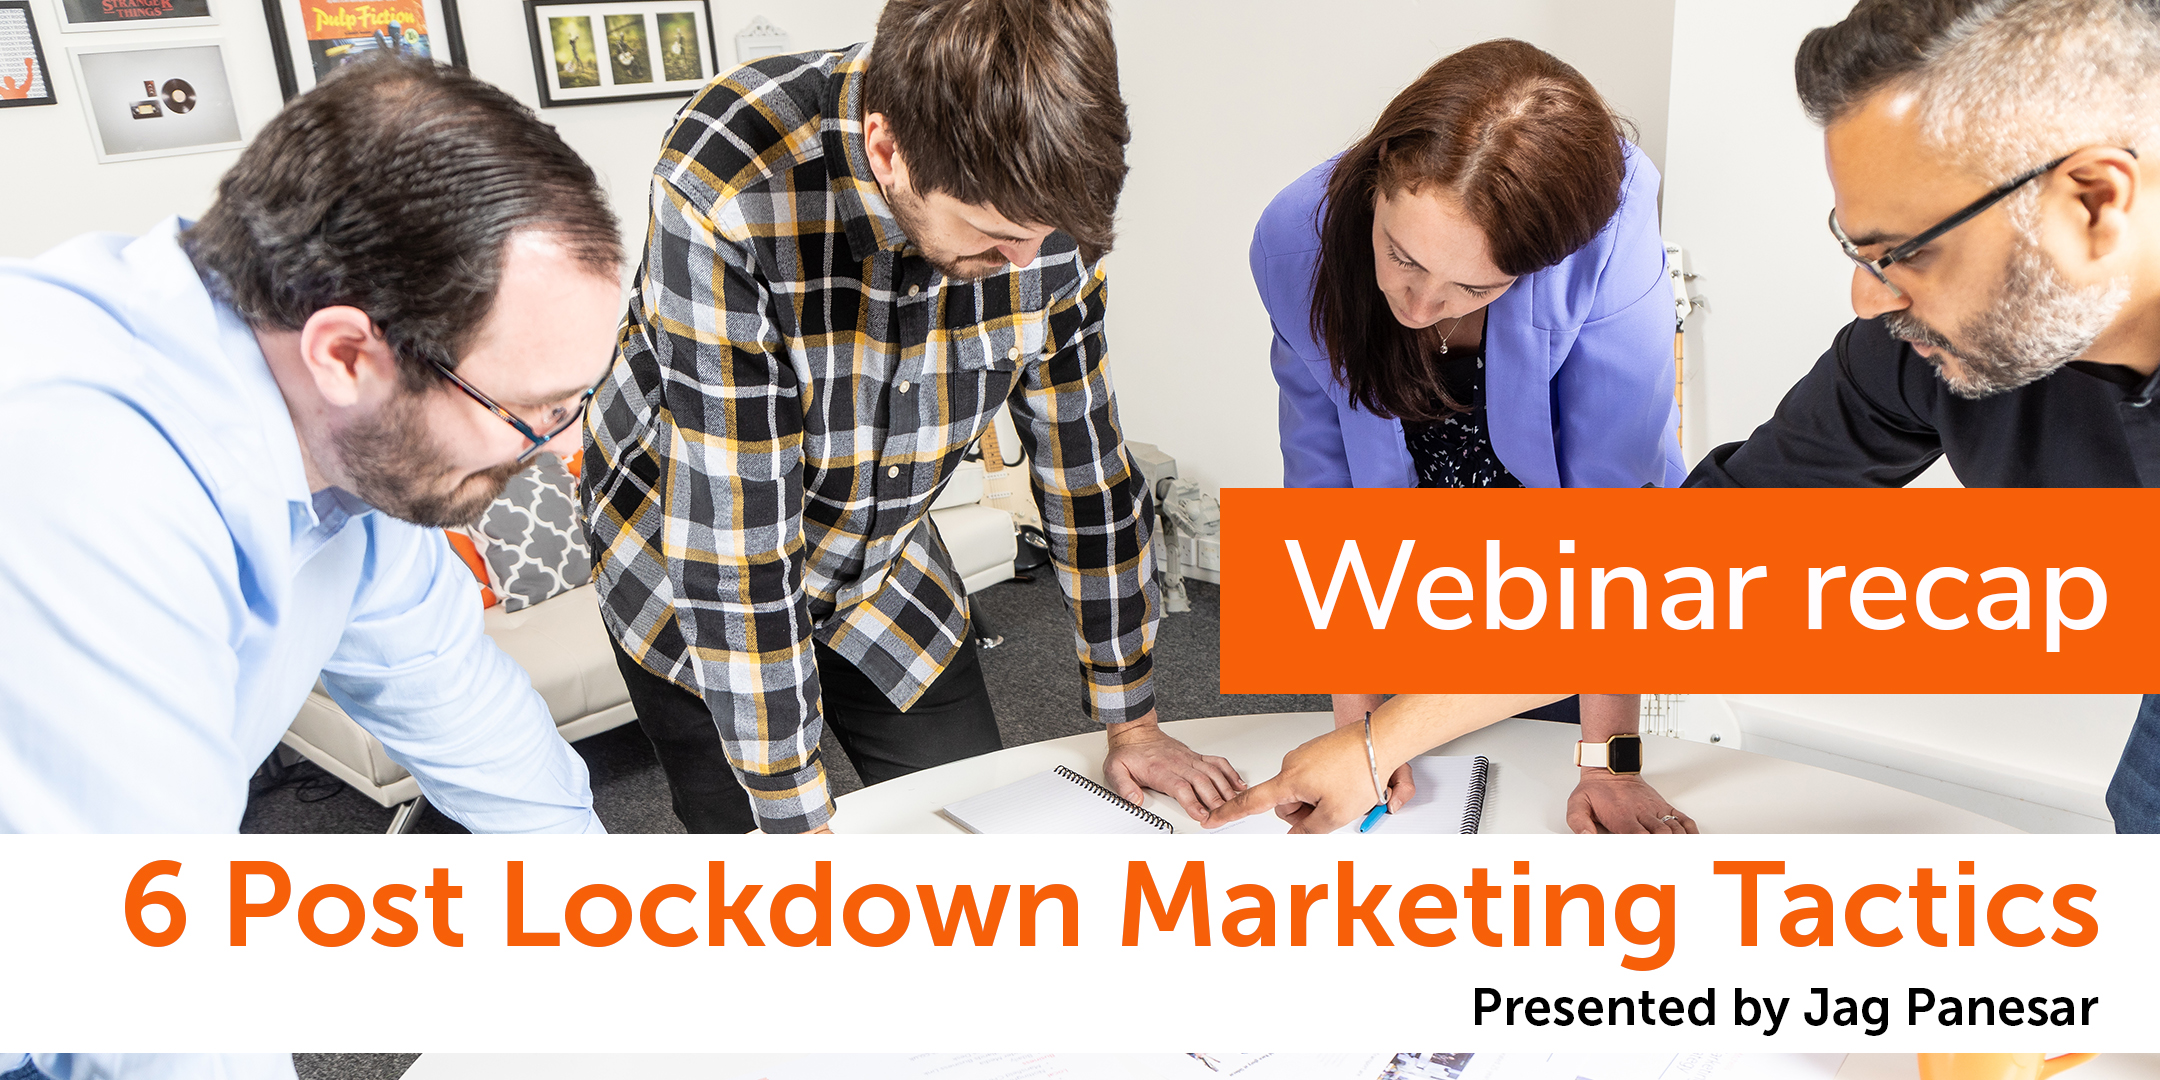 6 Post Lockdown Marketing Tactics - webinar recap